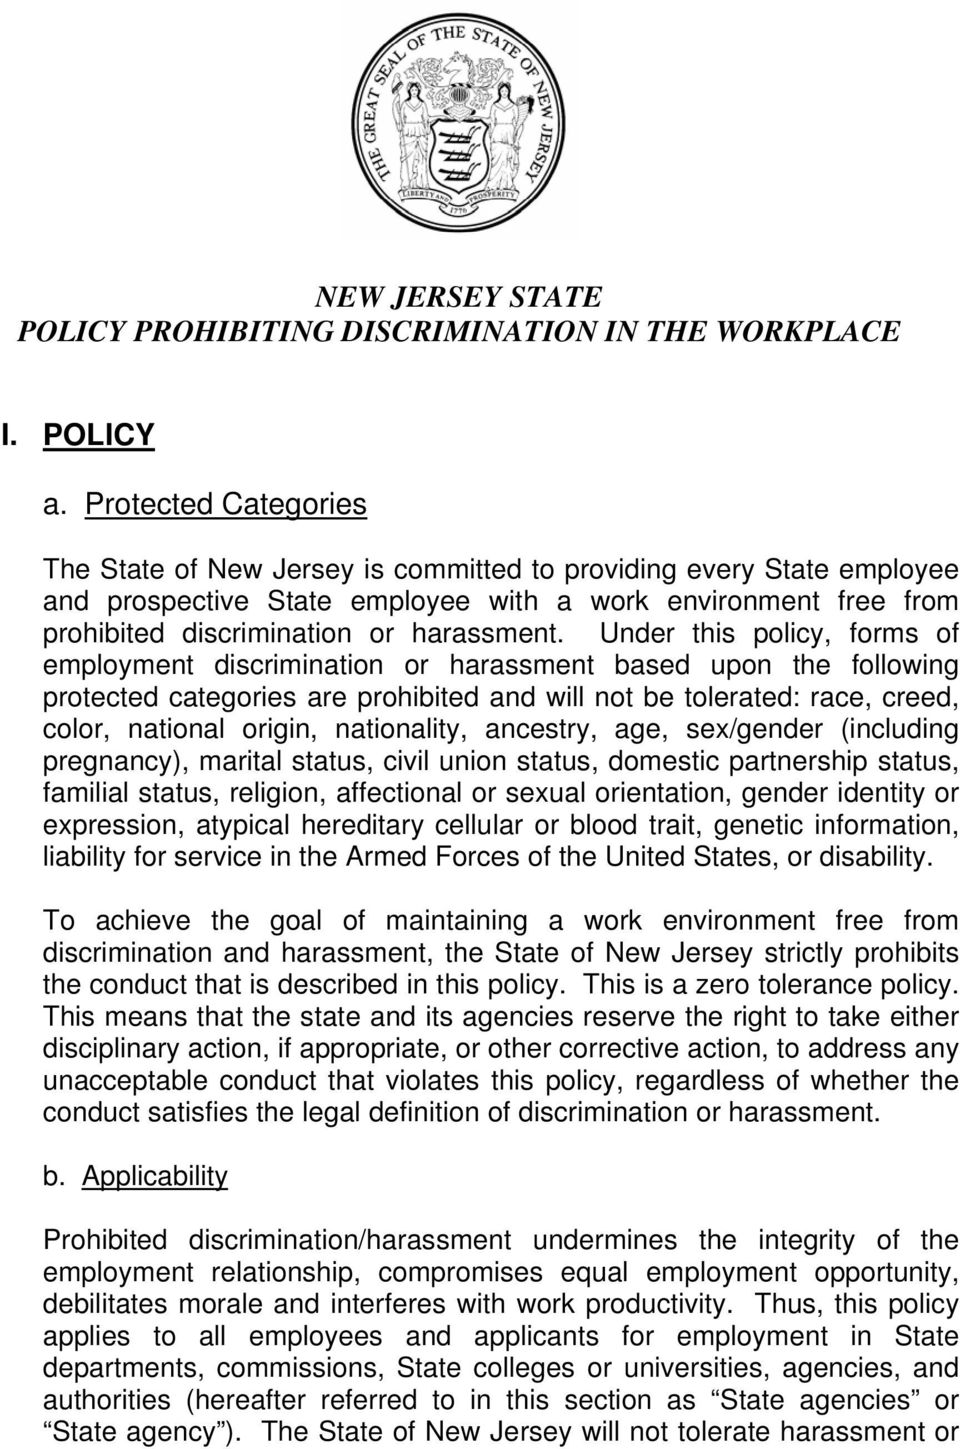 Under this policy, forms of employment discrimination or harassment based upon the following protected categories are prohibited and will not be tolerated: race, creed, color, national origin,